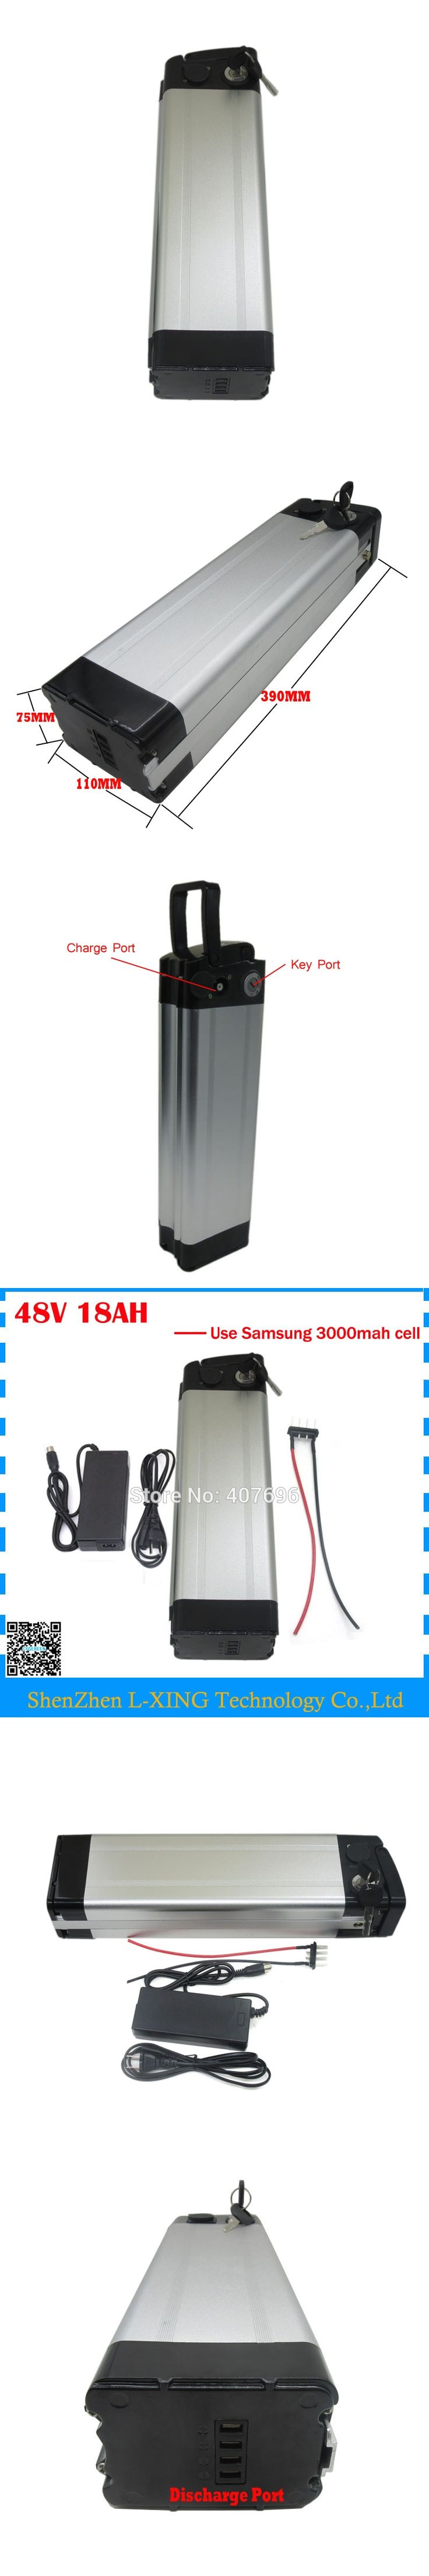 Free customs duty battery 48v 18ah 48V silver fish Battery electric bike 48V 18AH use Samsung 3000mah cell 20A BMS 2A Charger